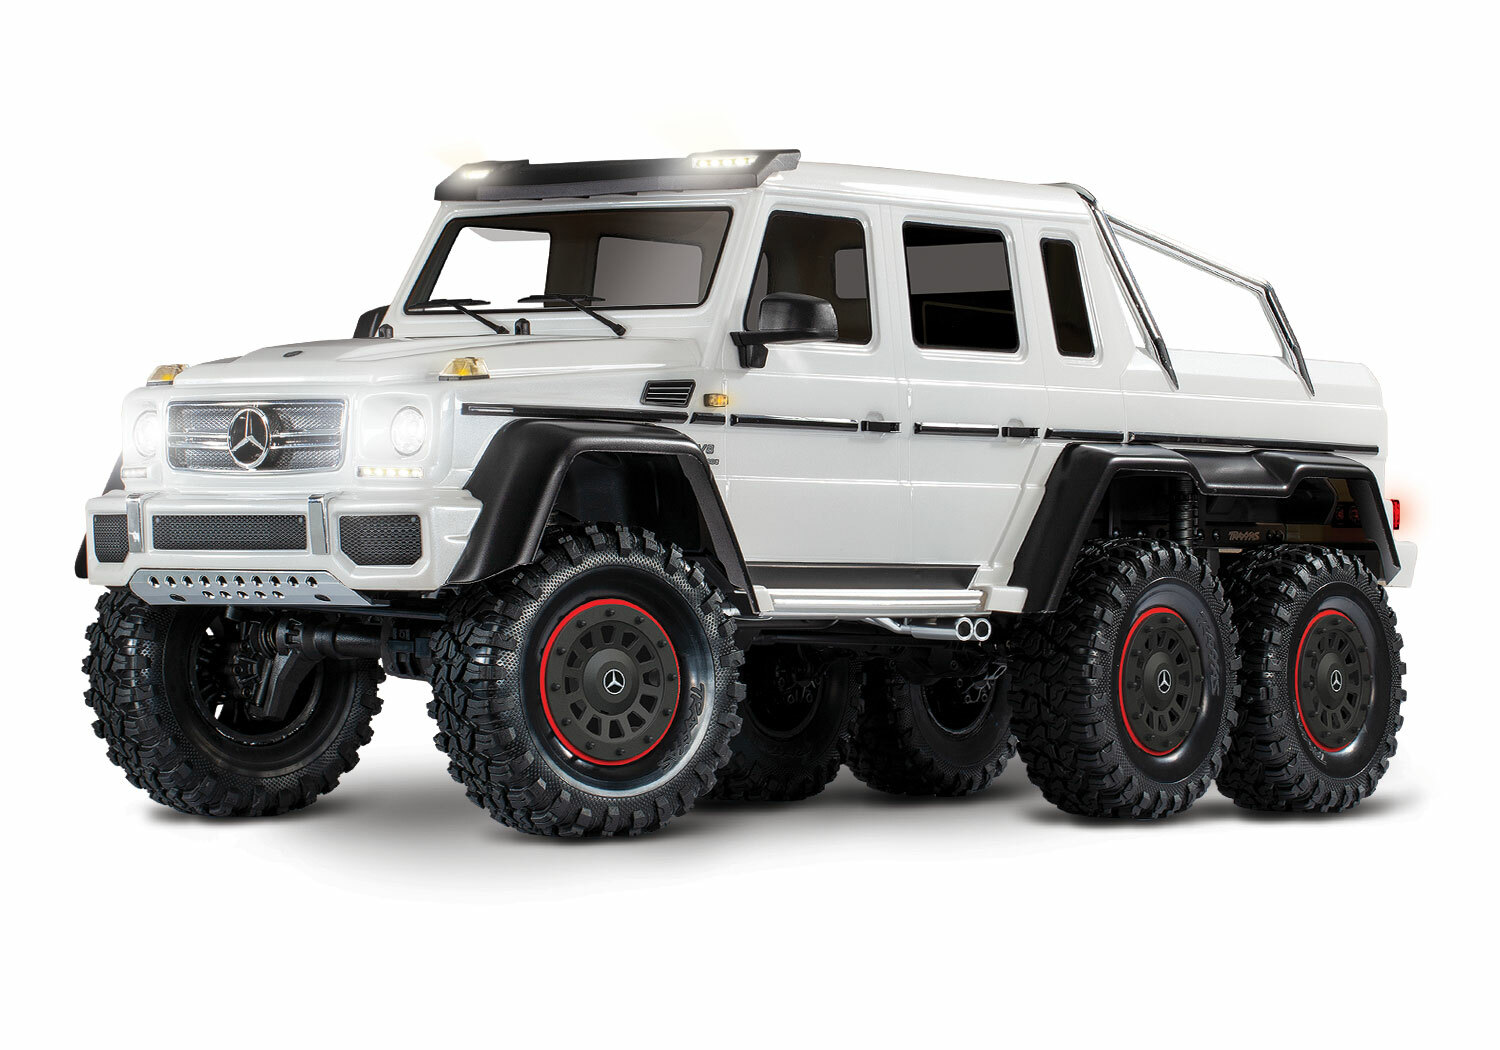 Traxxas TRX-6 Mercedes-Benz G 63 AMG 6x6 (XL-5HV, TQi, LED Lights) (No Battery or Charger) - Special Edition